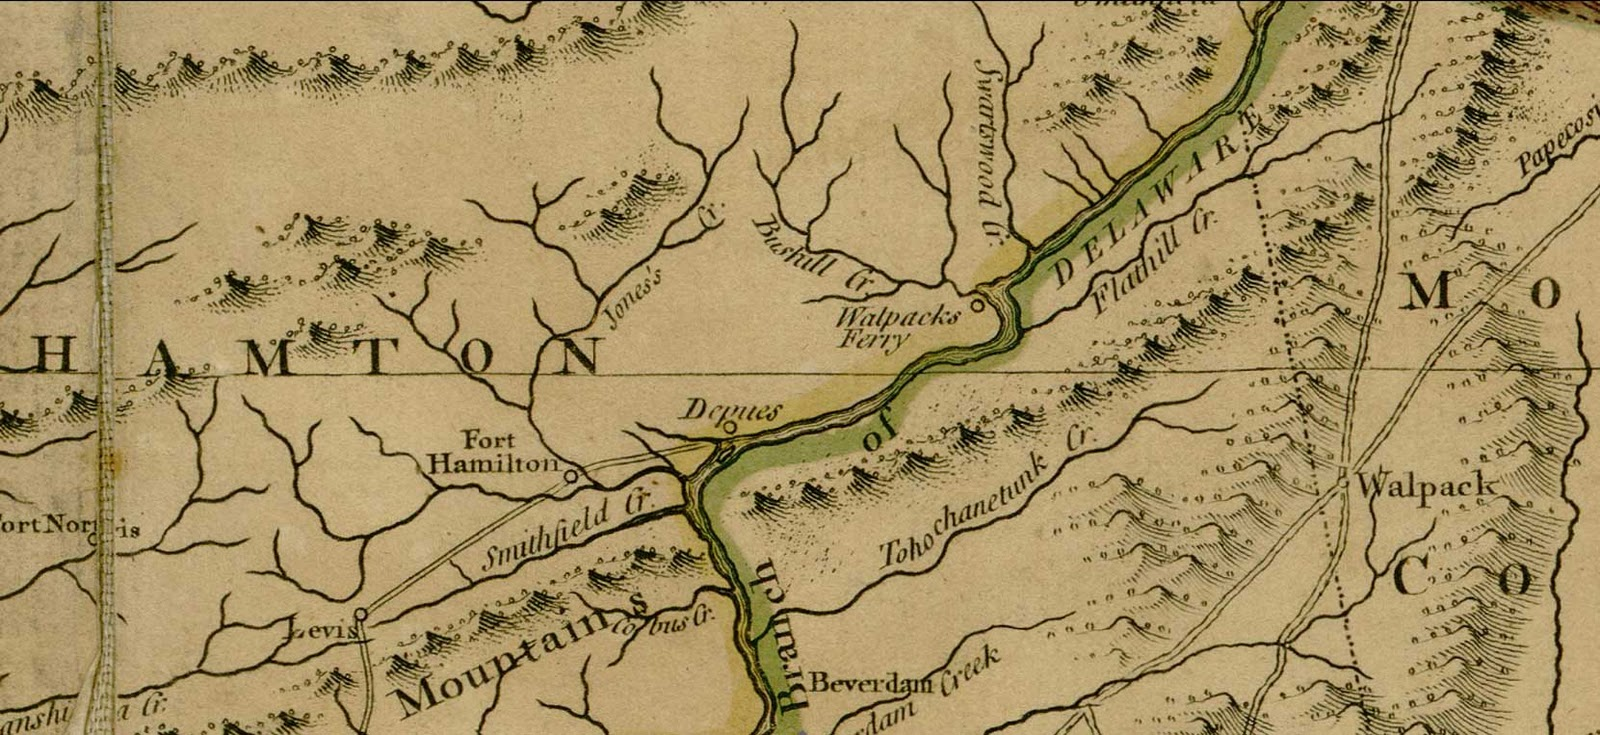 1768 map by samuel holland shows bushkill creek swartswoods creek flathill creek walpacks ferry depues fort hamilton and fort norris